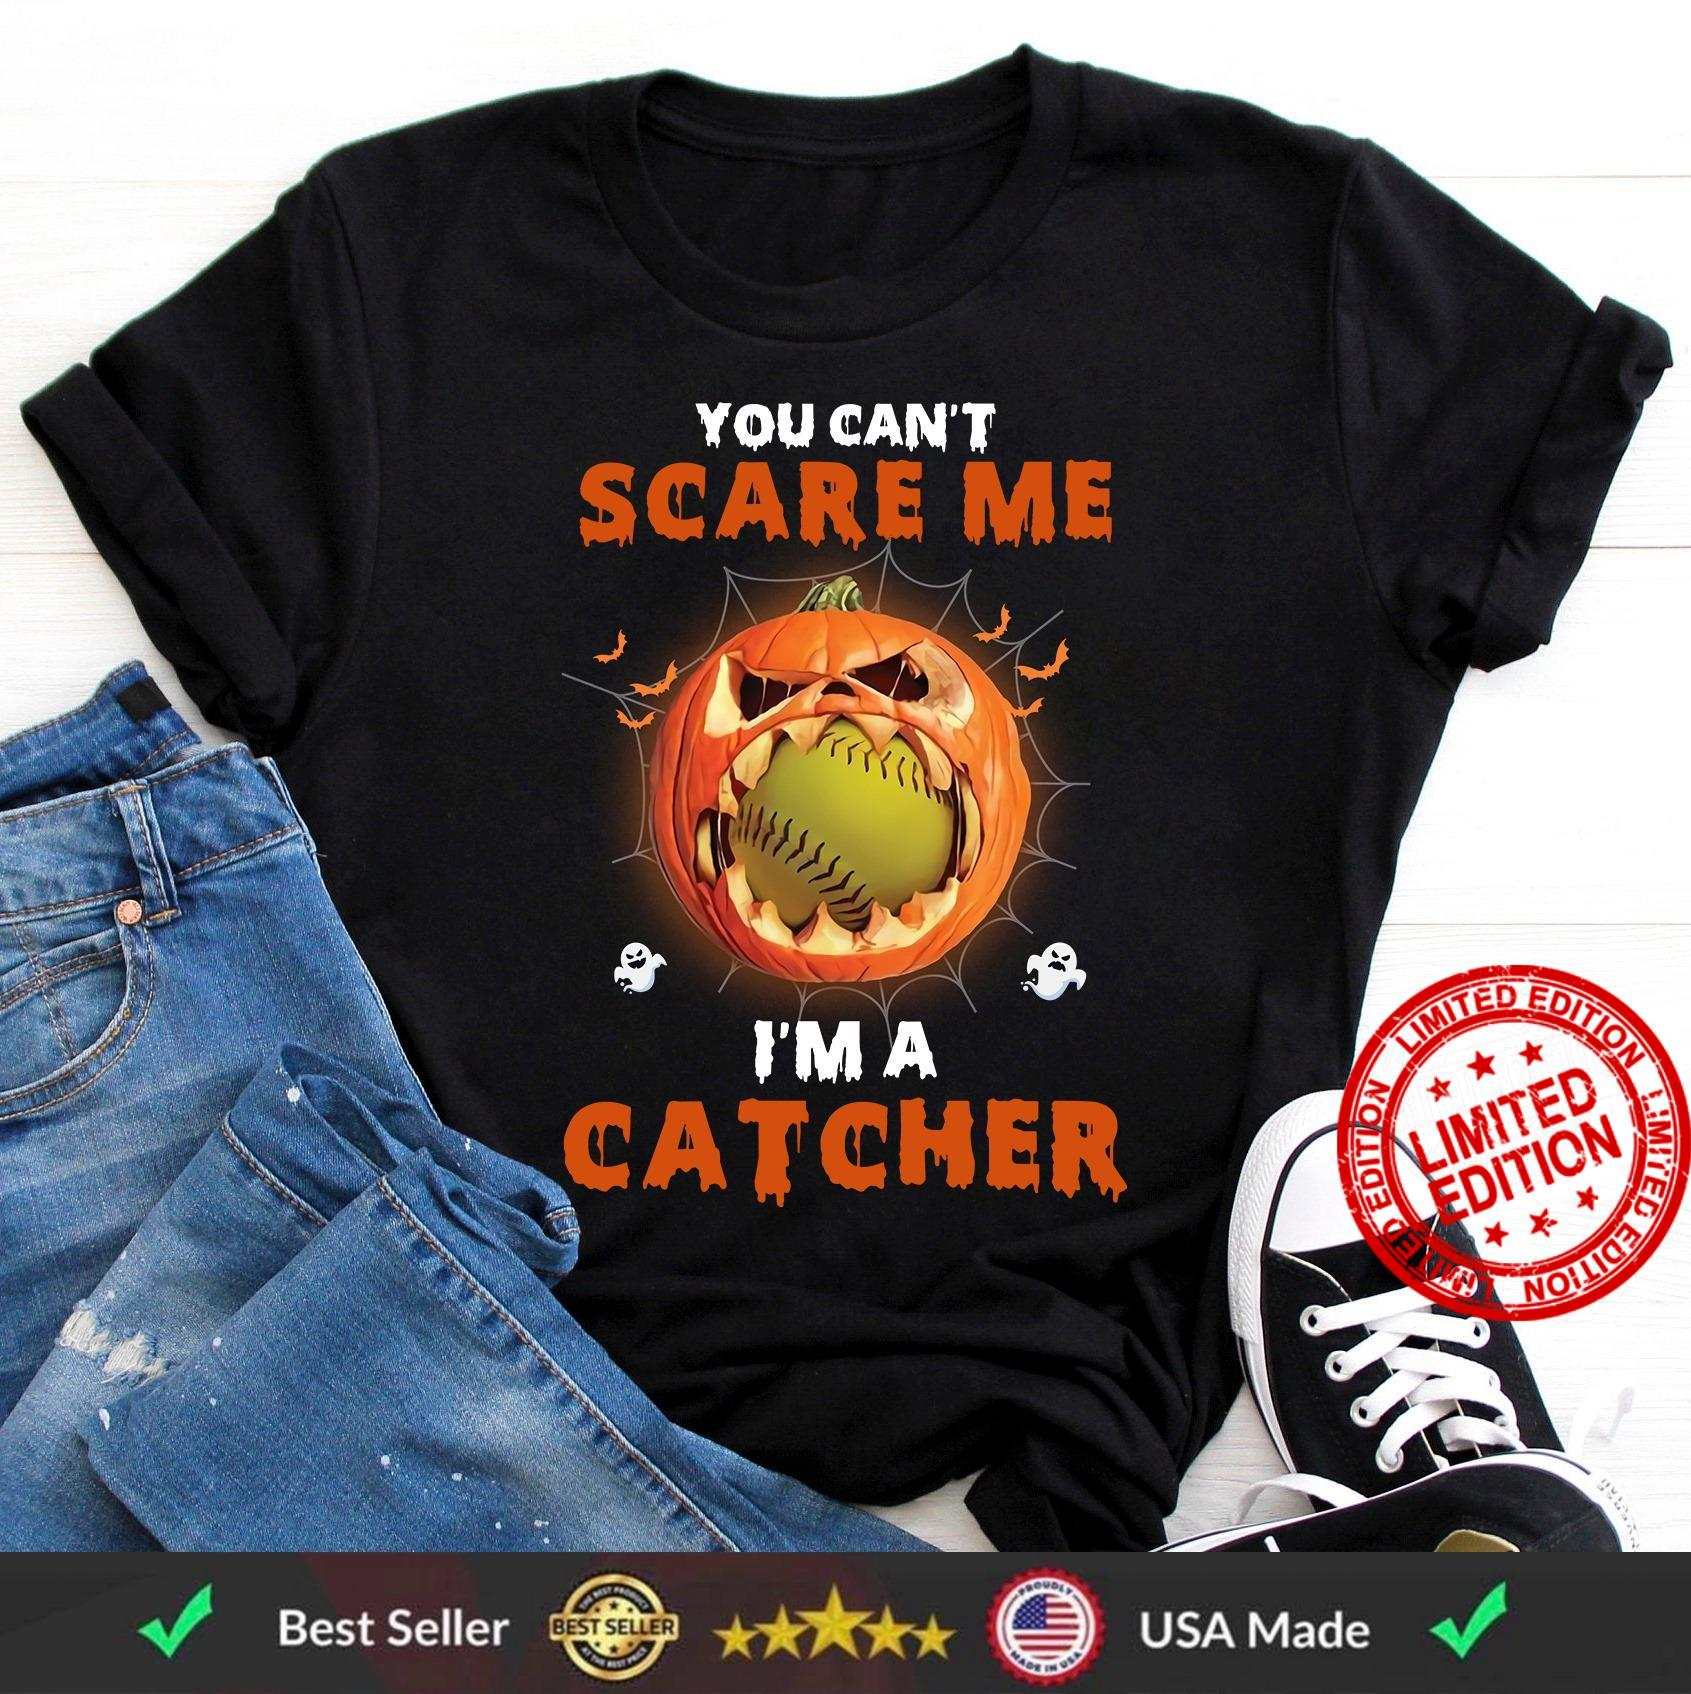 You Can't Scare Me I'm A Catcher Shirt